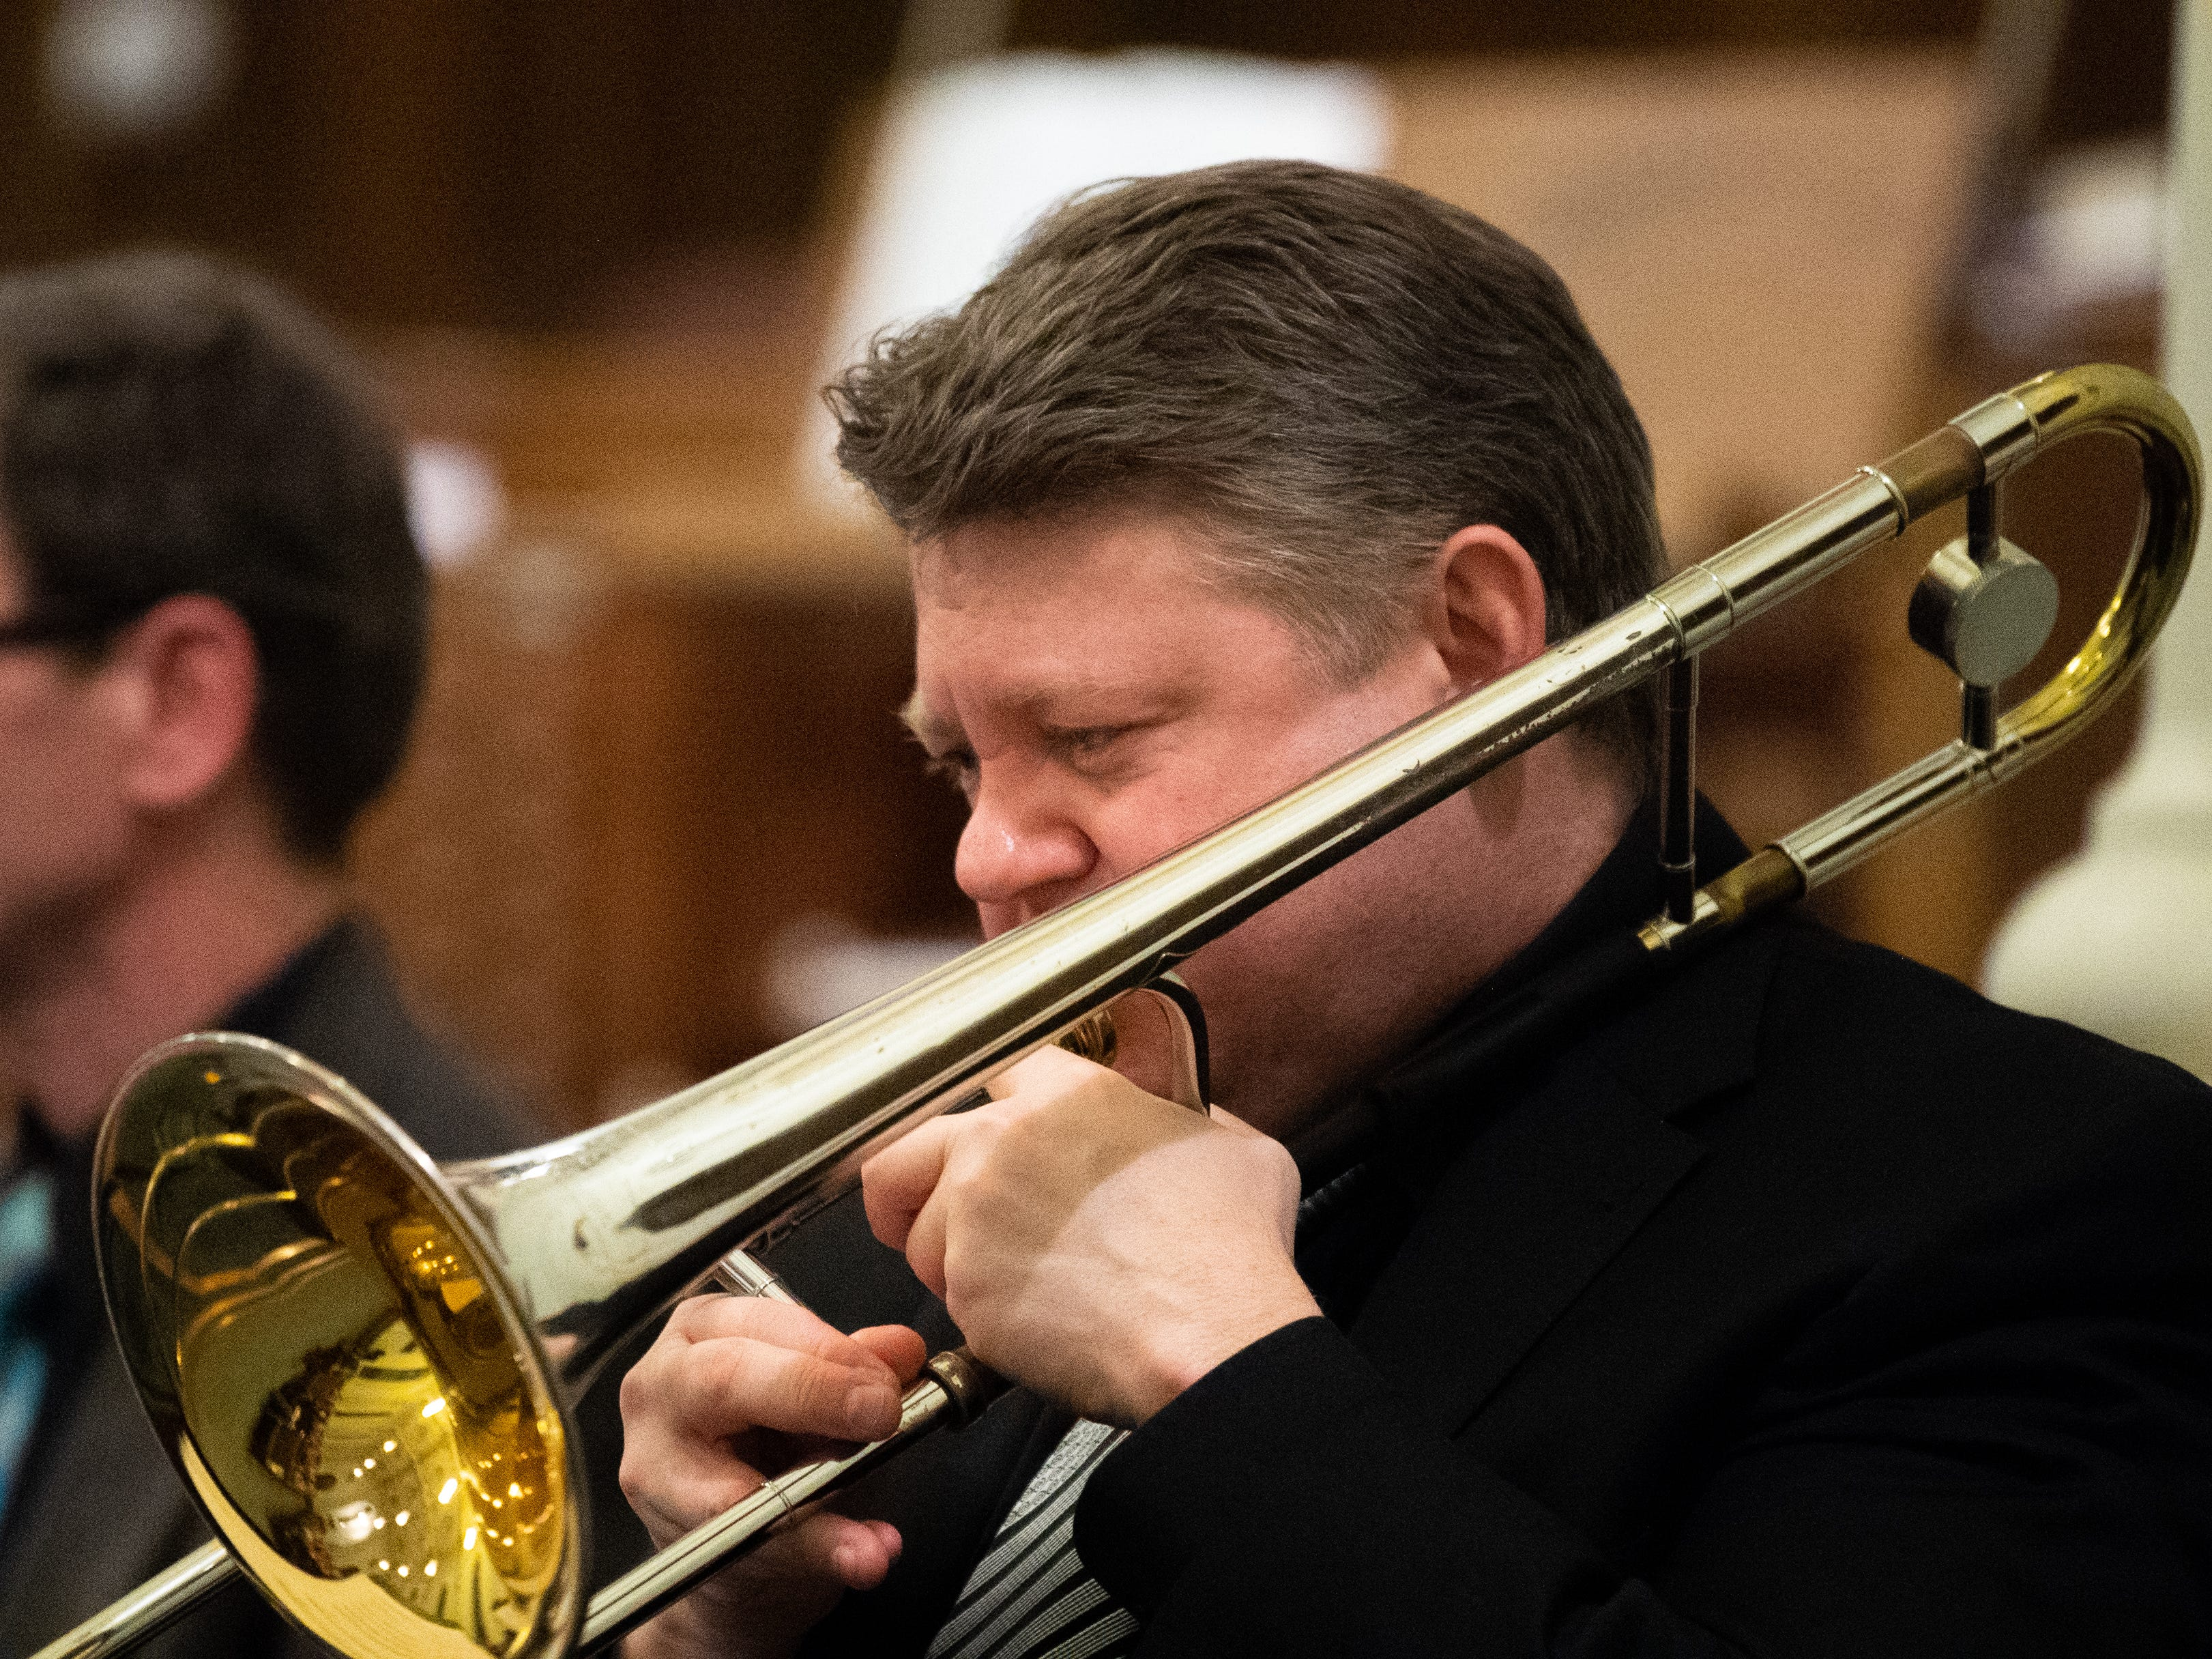 Trombone player Don Collins hits every note during the 21st annual Jazz Vespers concert at First Presbyterian Church in York, January 12, 2019.